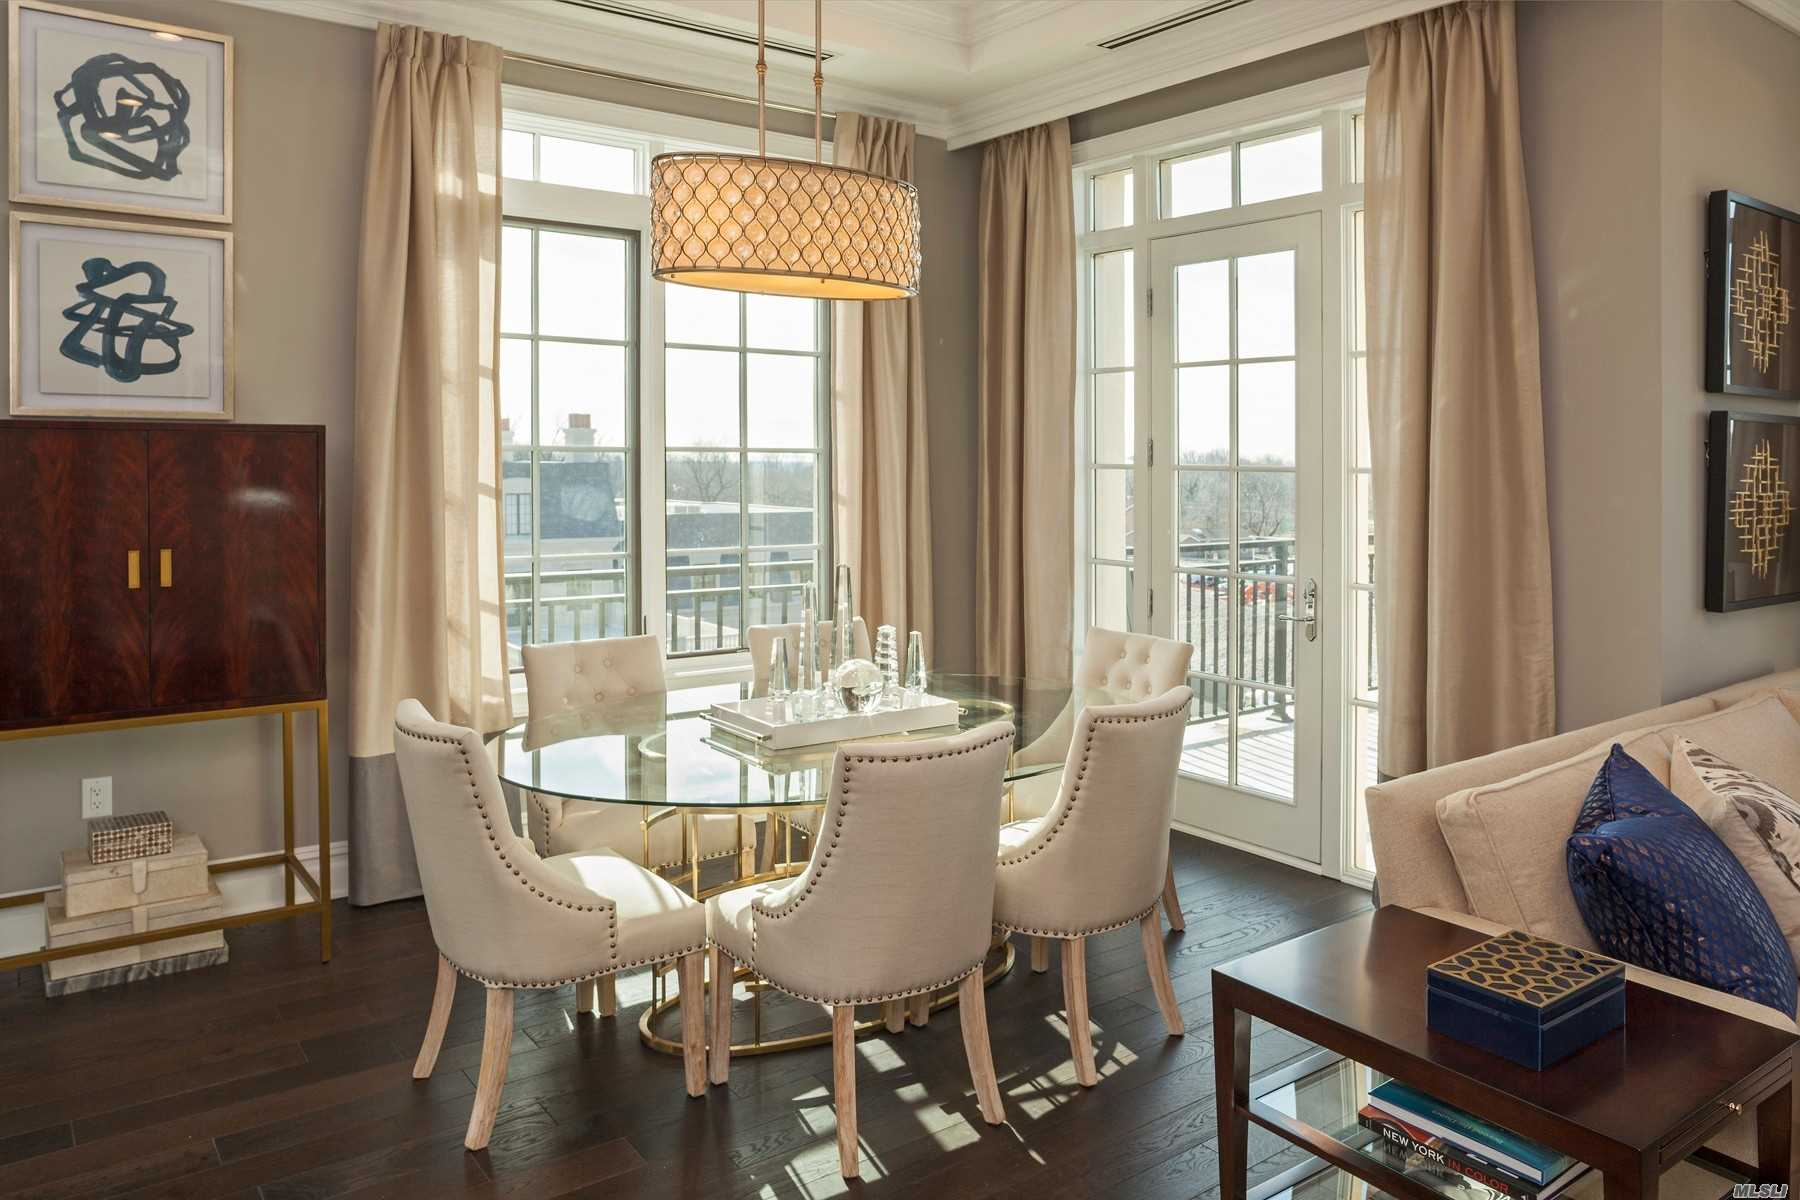 Come Live At The Ritz In This Fabulous Condo Over Looking The Pool. The Ritz Carlton Residences, Luxury Condominiums Set On 17 Beautifully Landscaped Acres Within The Village Of North Hills, 20 Miles From Manhattan, 60 Miles To The Hamptons. Legendary Services, Gated Community, Private Clubhouse, Gracious Living Spaces, Gourmet Kitchens, Resort Style Amenities. Car Service To Lirr, Close To Top Ranked Schools, Fine Dining And Americana Shops